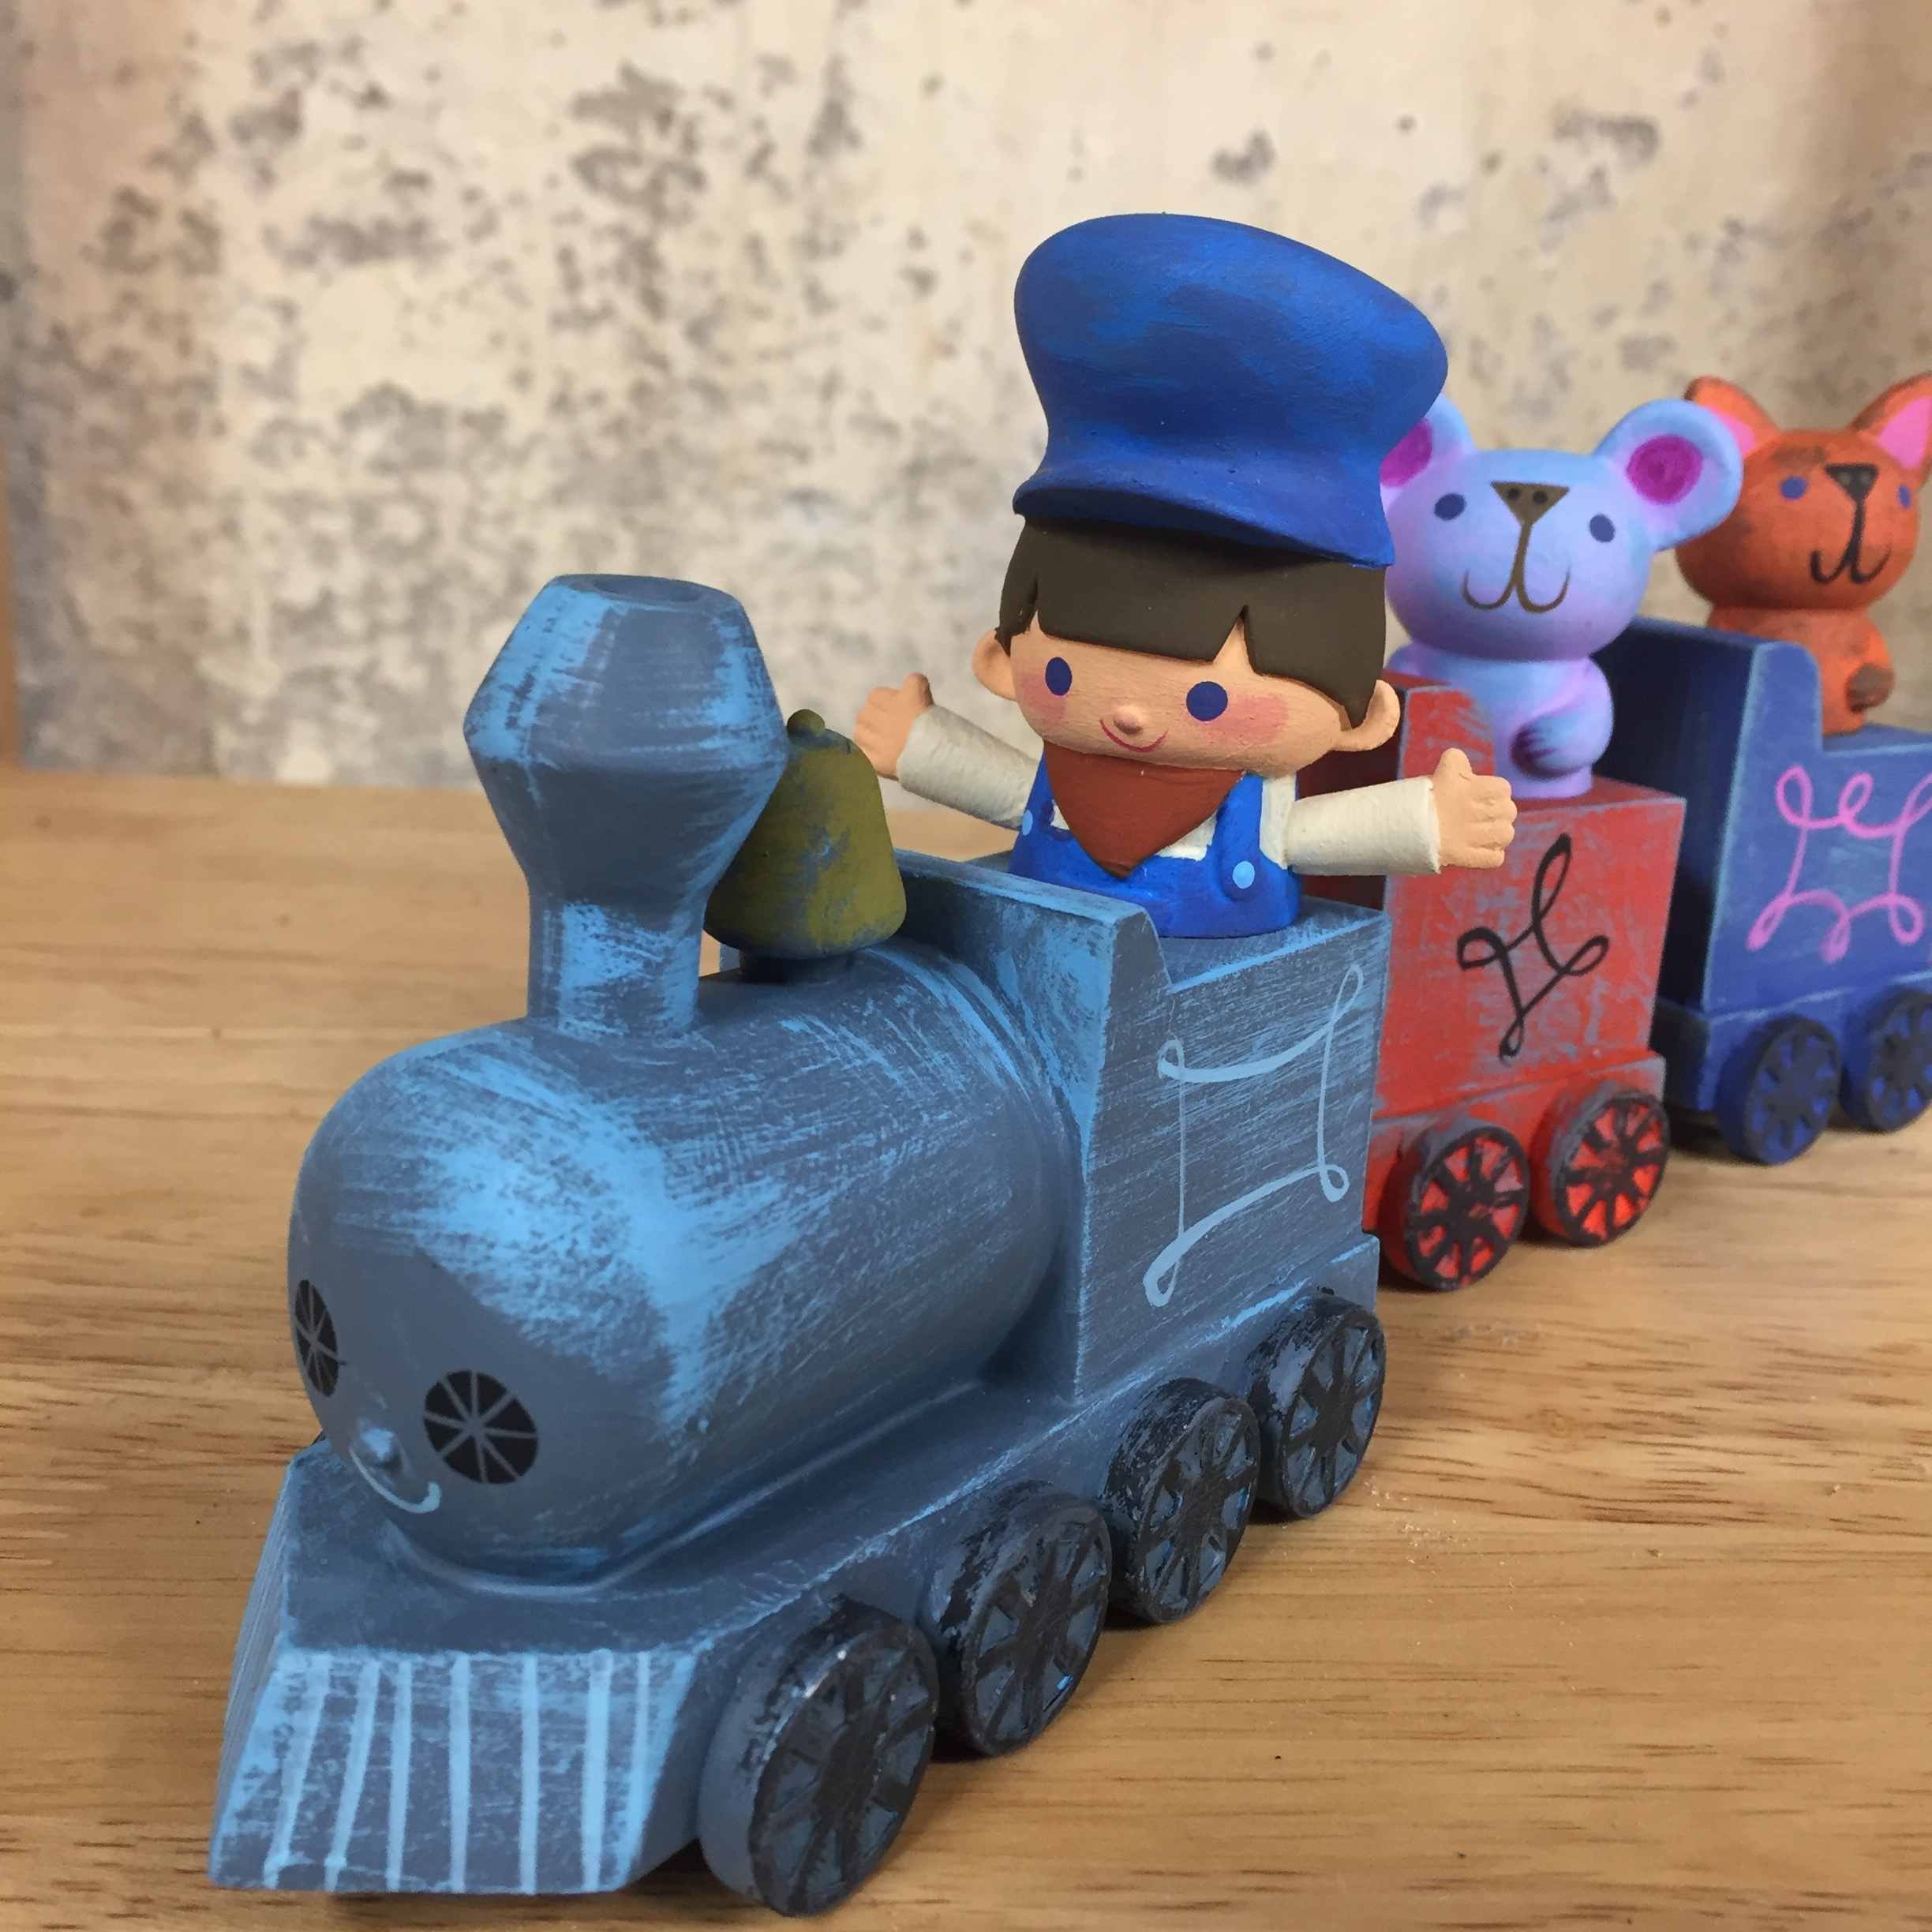 Locomotion Set Resin Art Toy by Itokin Park, Amanda Visell, Michelle Valigura